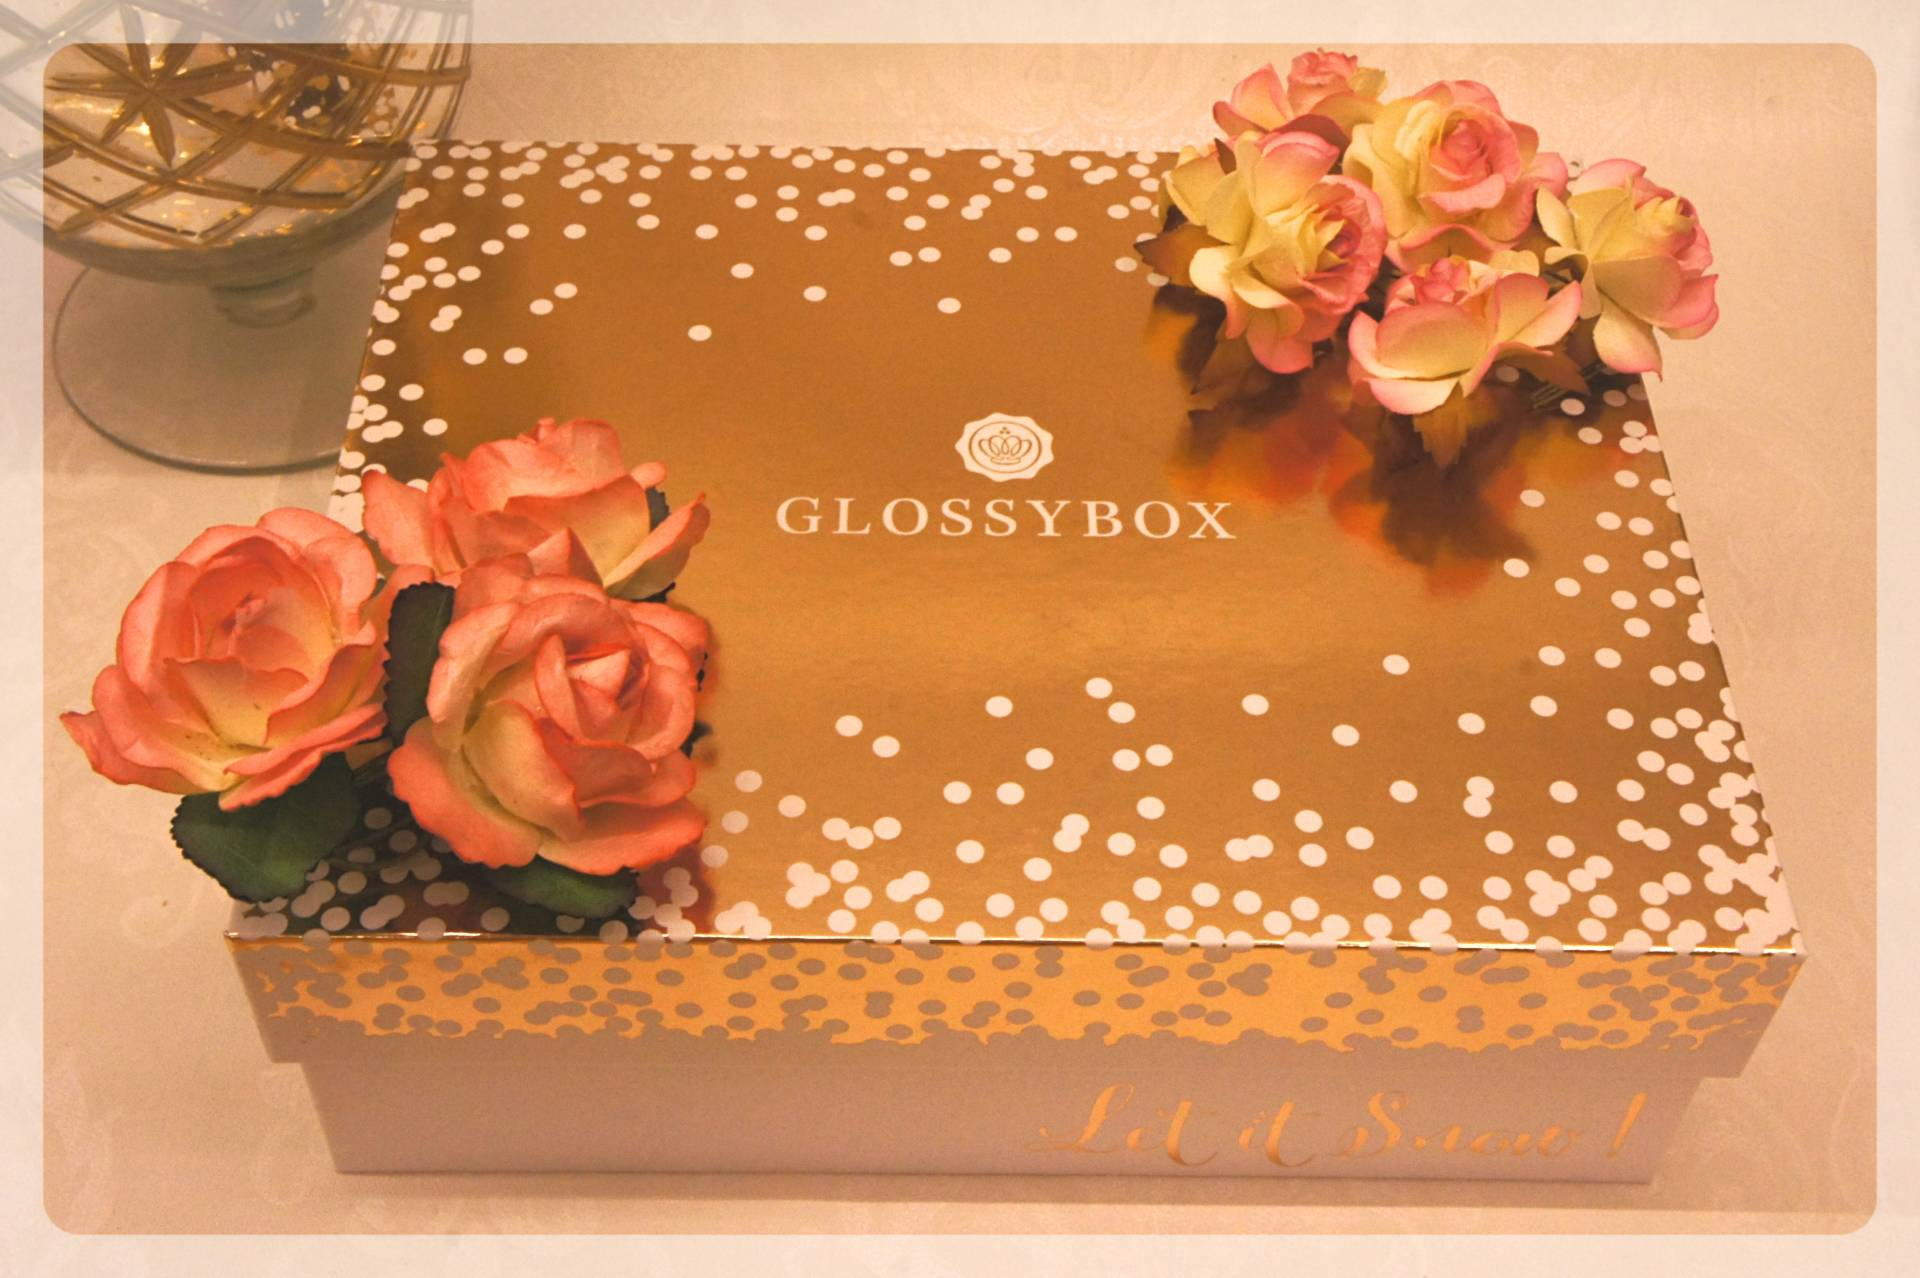 Glossybox December Rose Gold Box Review